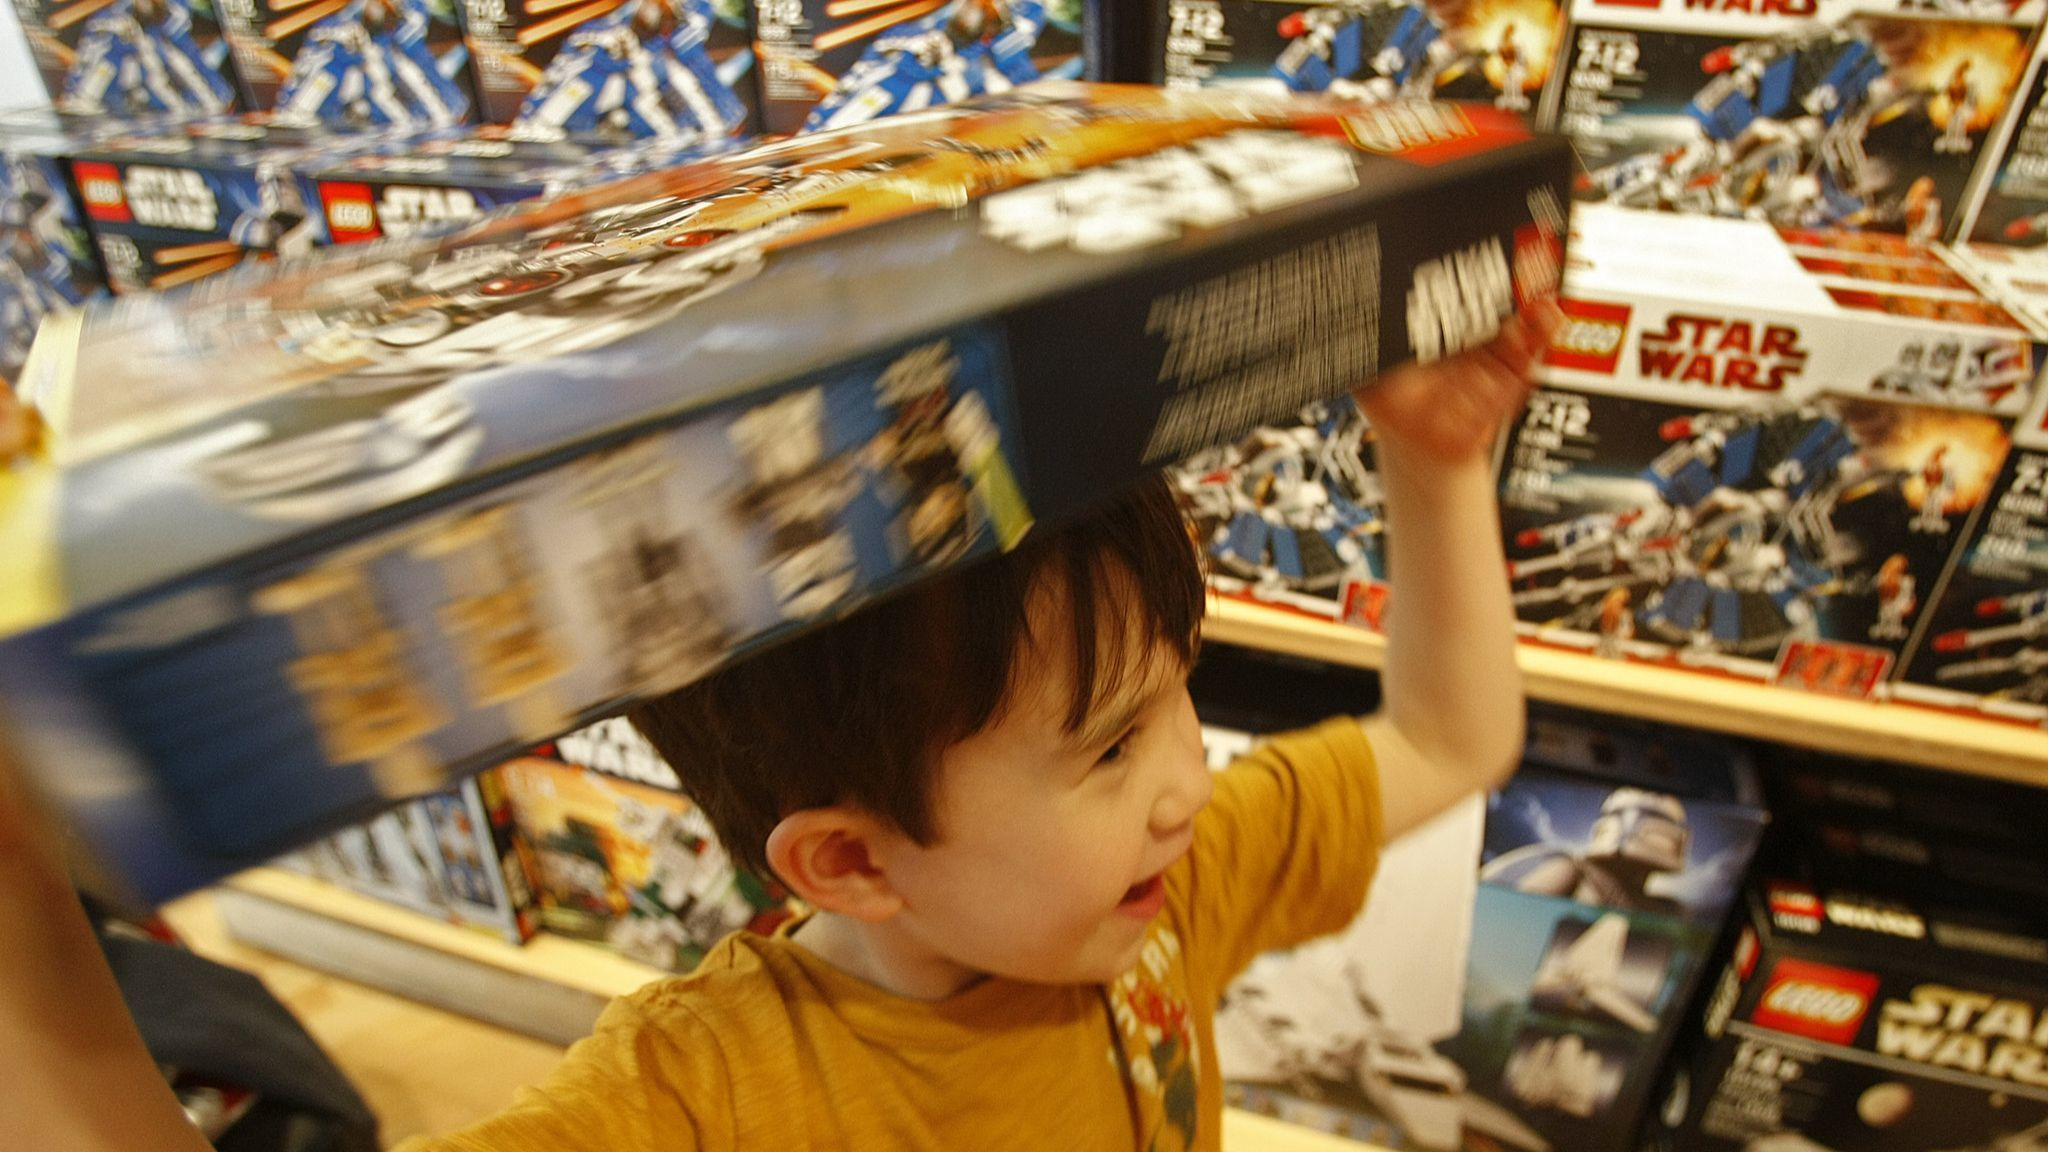 The hot new asset class: Collecting Lego sets may be more lucrative than investing in stocks and bonds, according a study